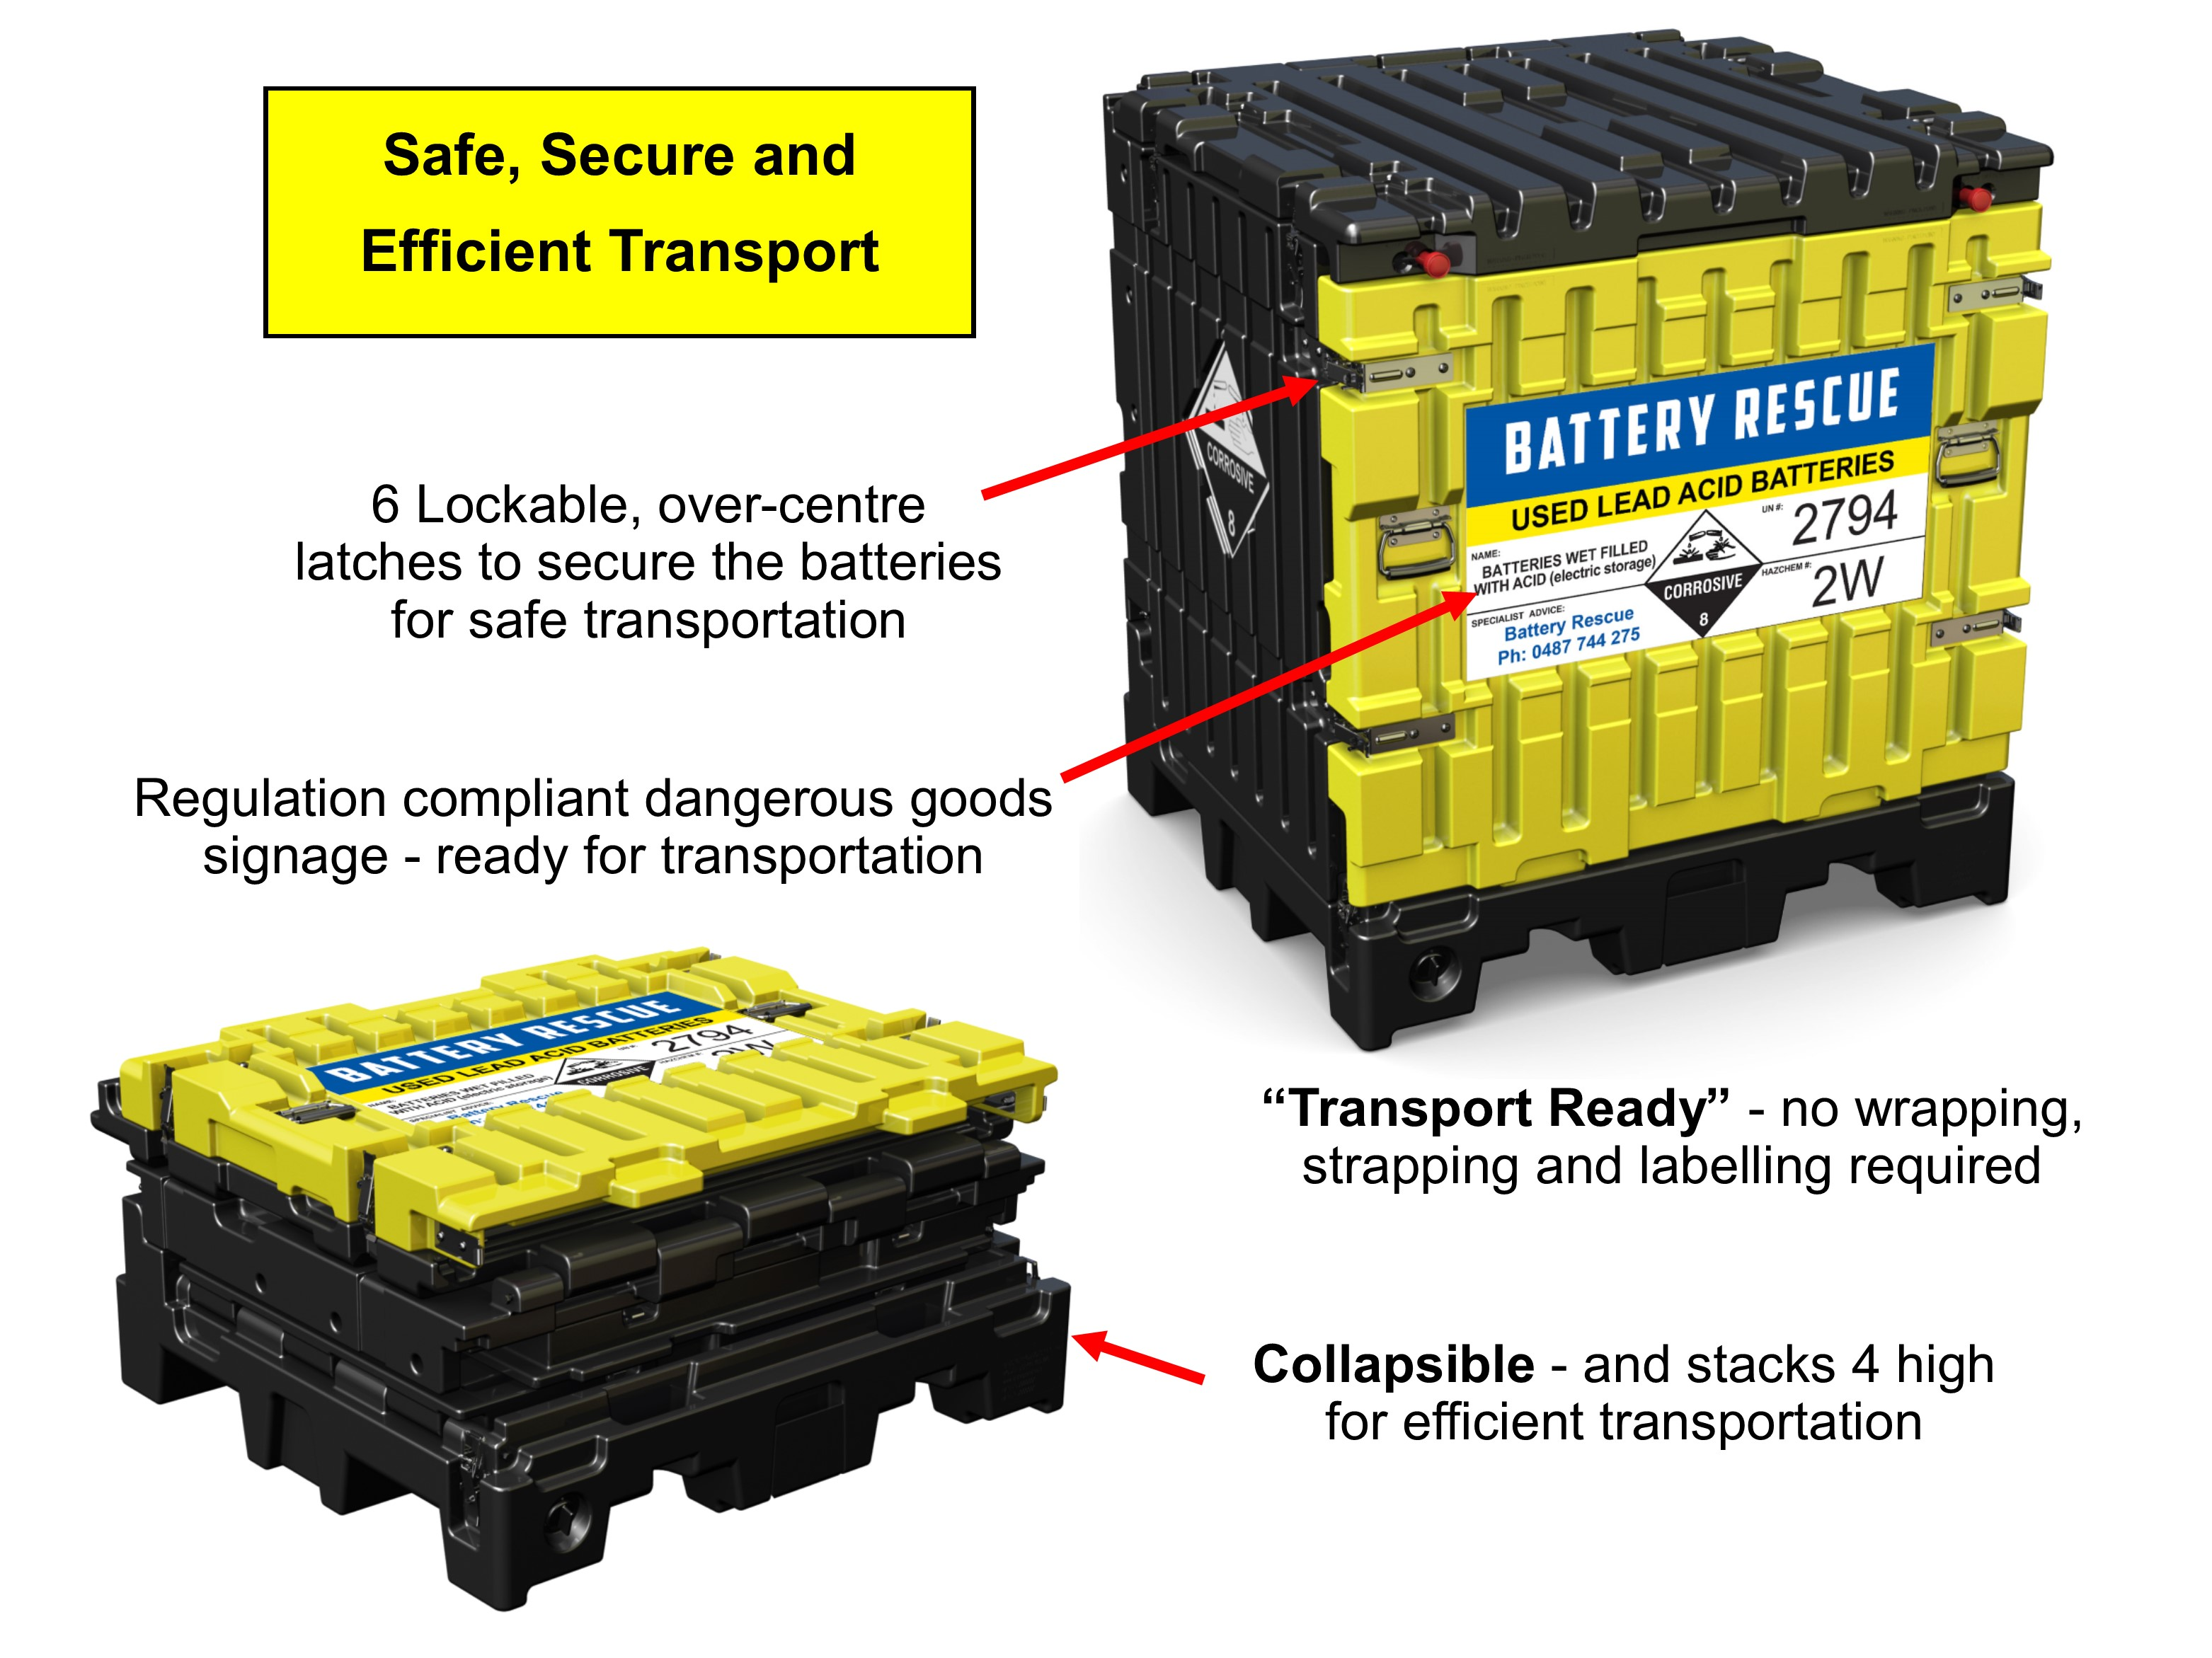 Lead Acid Battery Container For Safe Battery Storage And